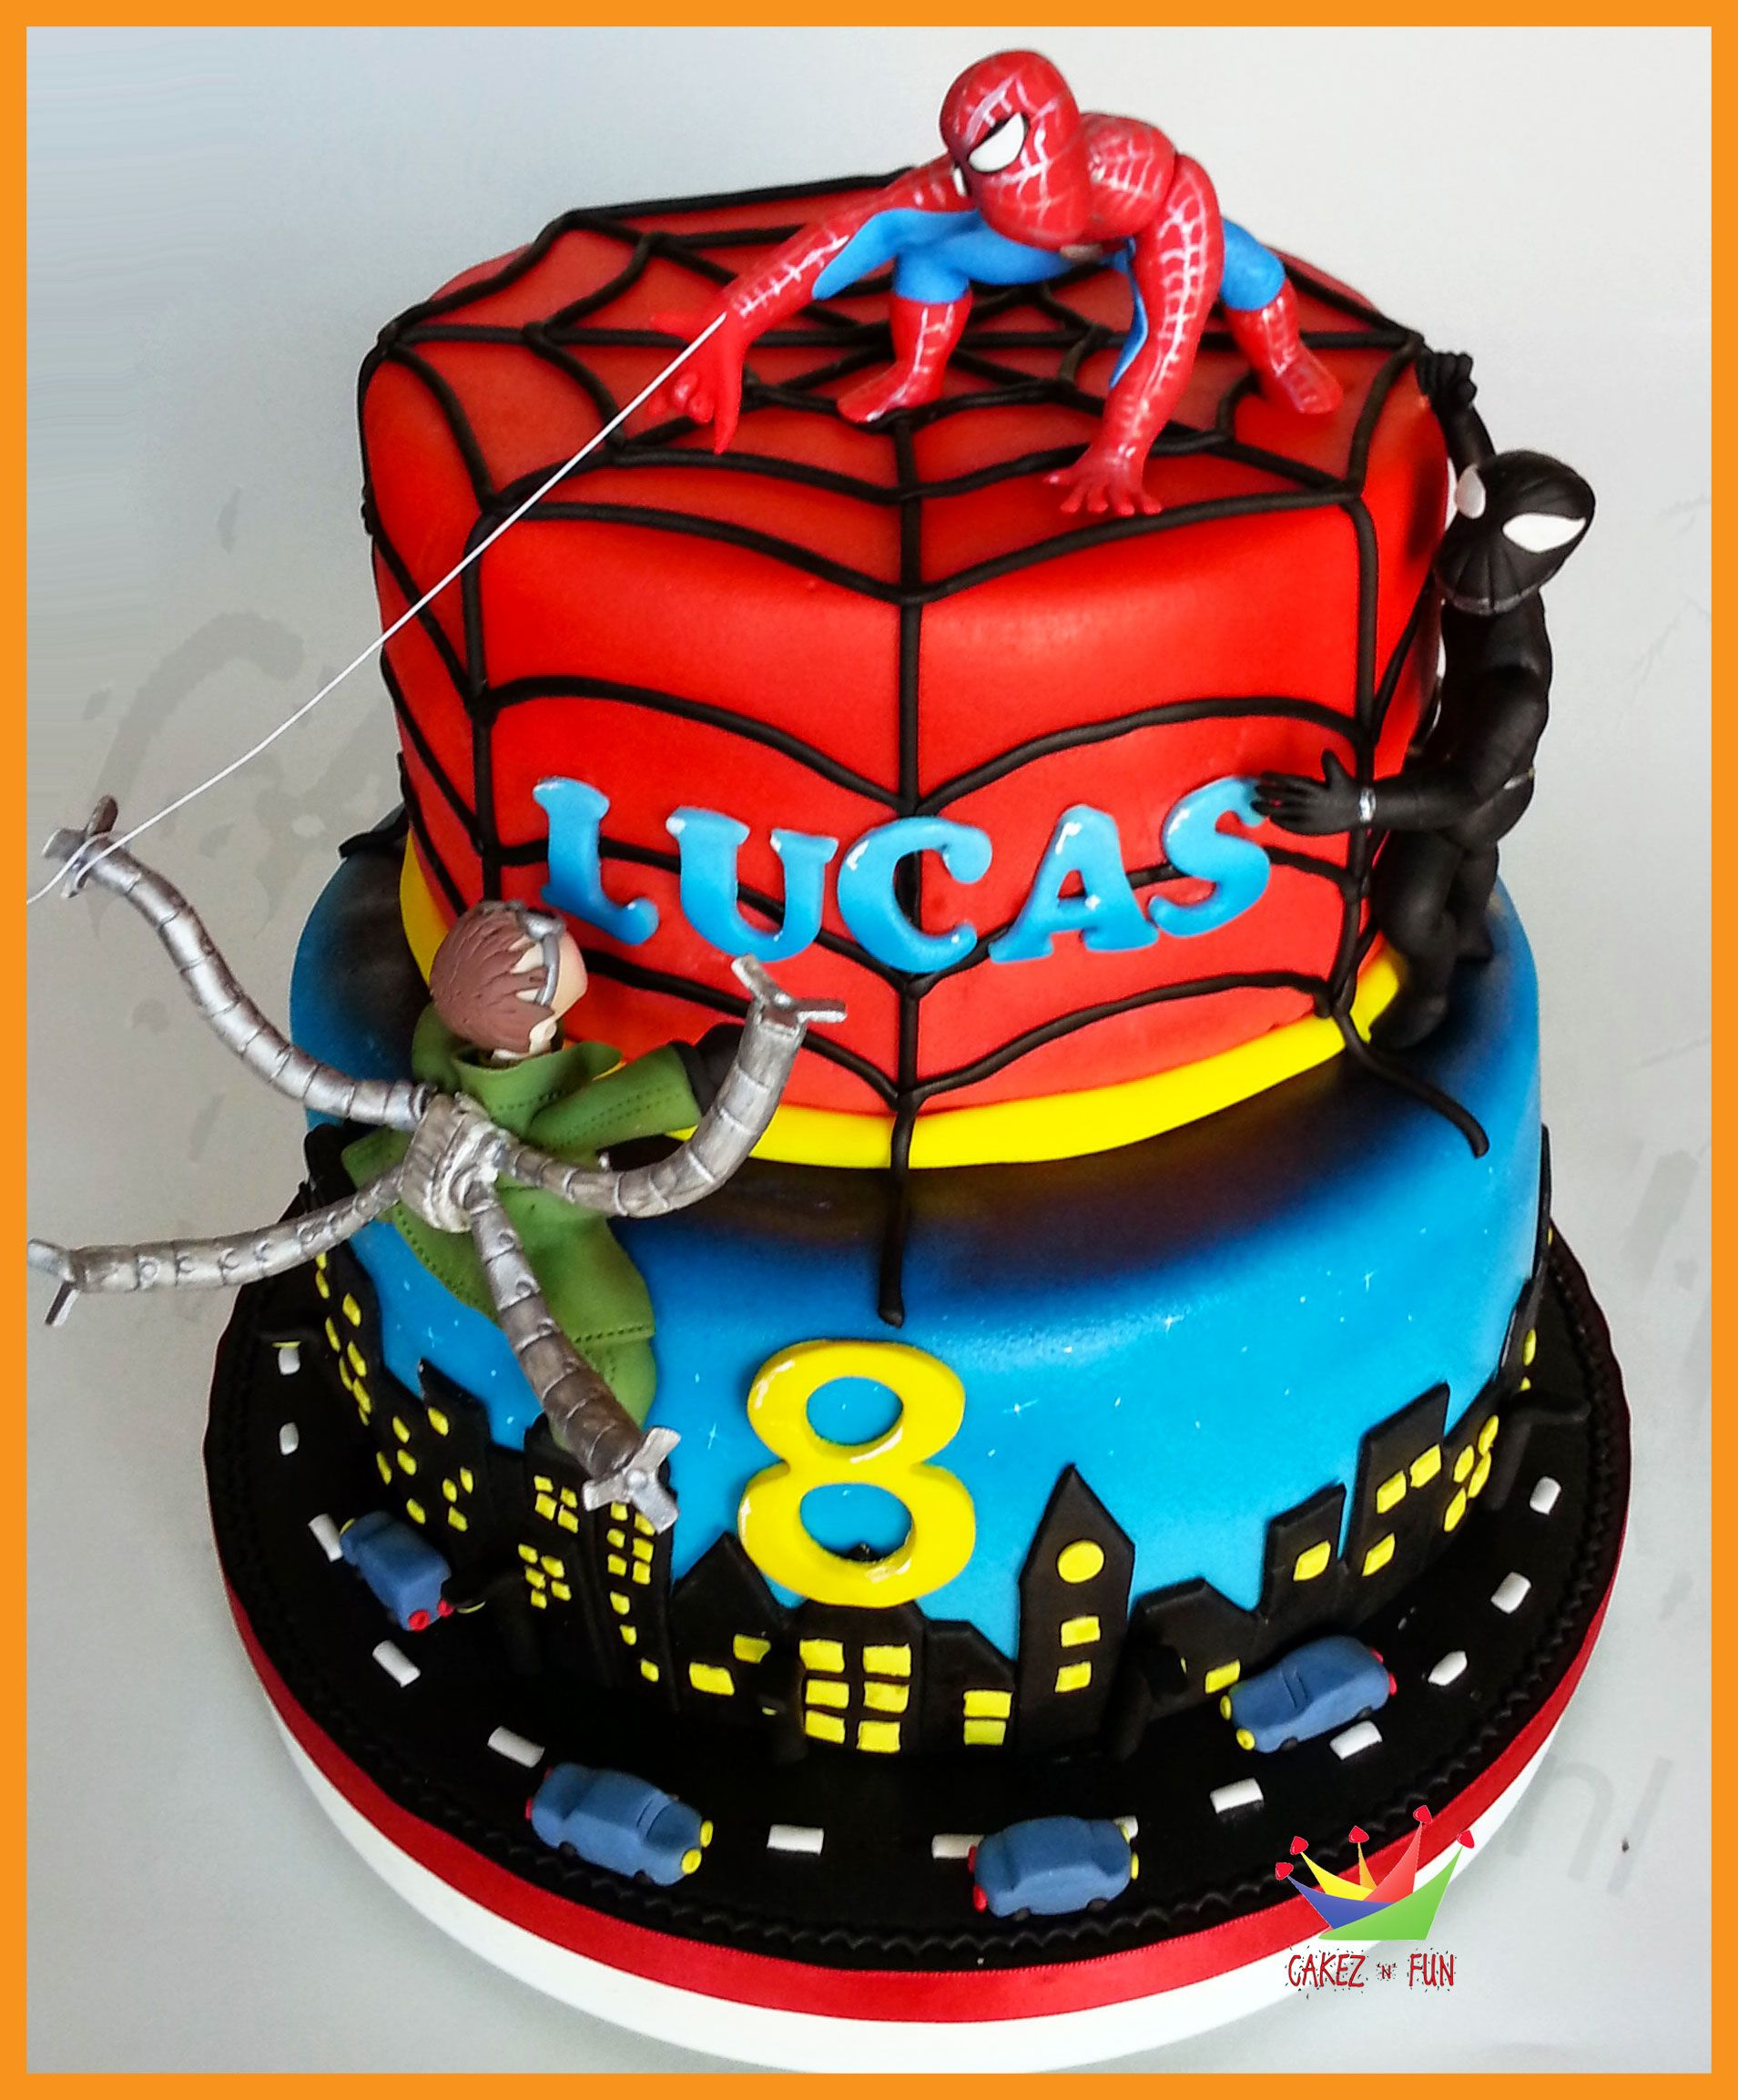 Black spiderman cakes - photo#39